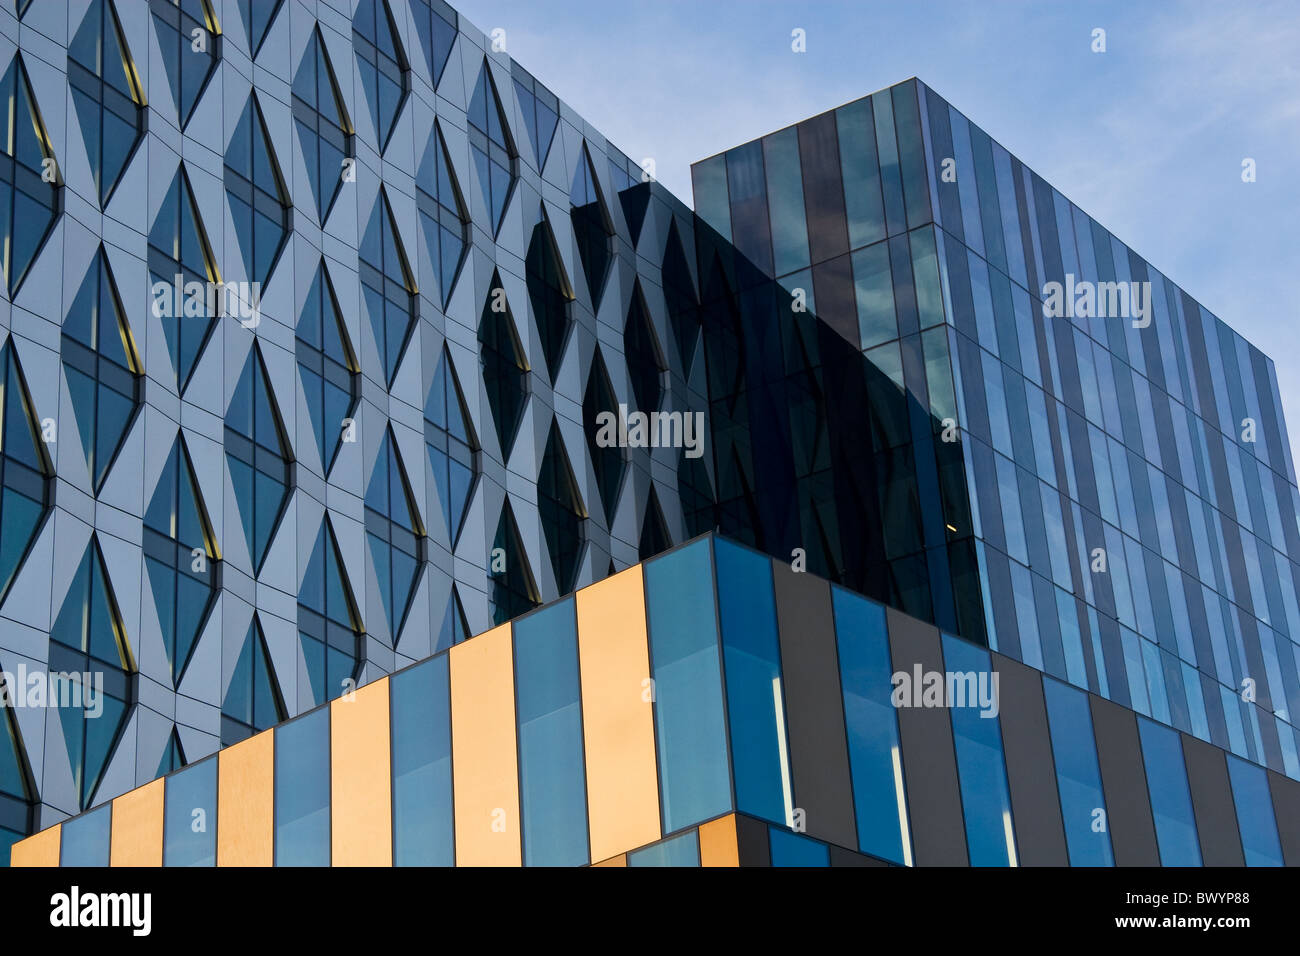 University of Salford Building , Media City, Salford Quays, Salford, Greater Manchester, England, UK - Stock Image